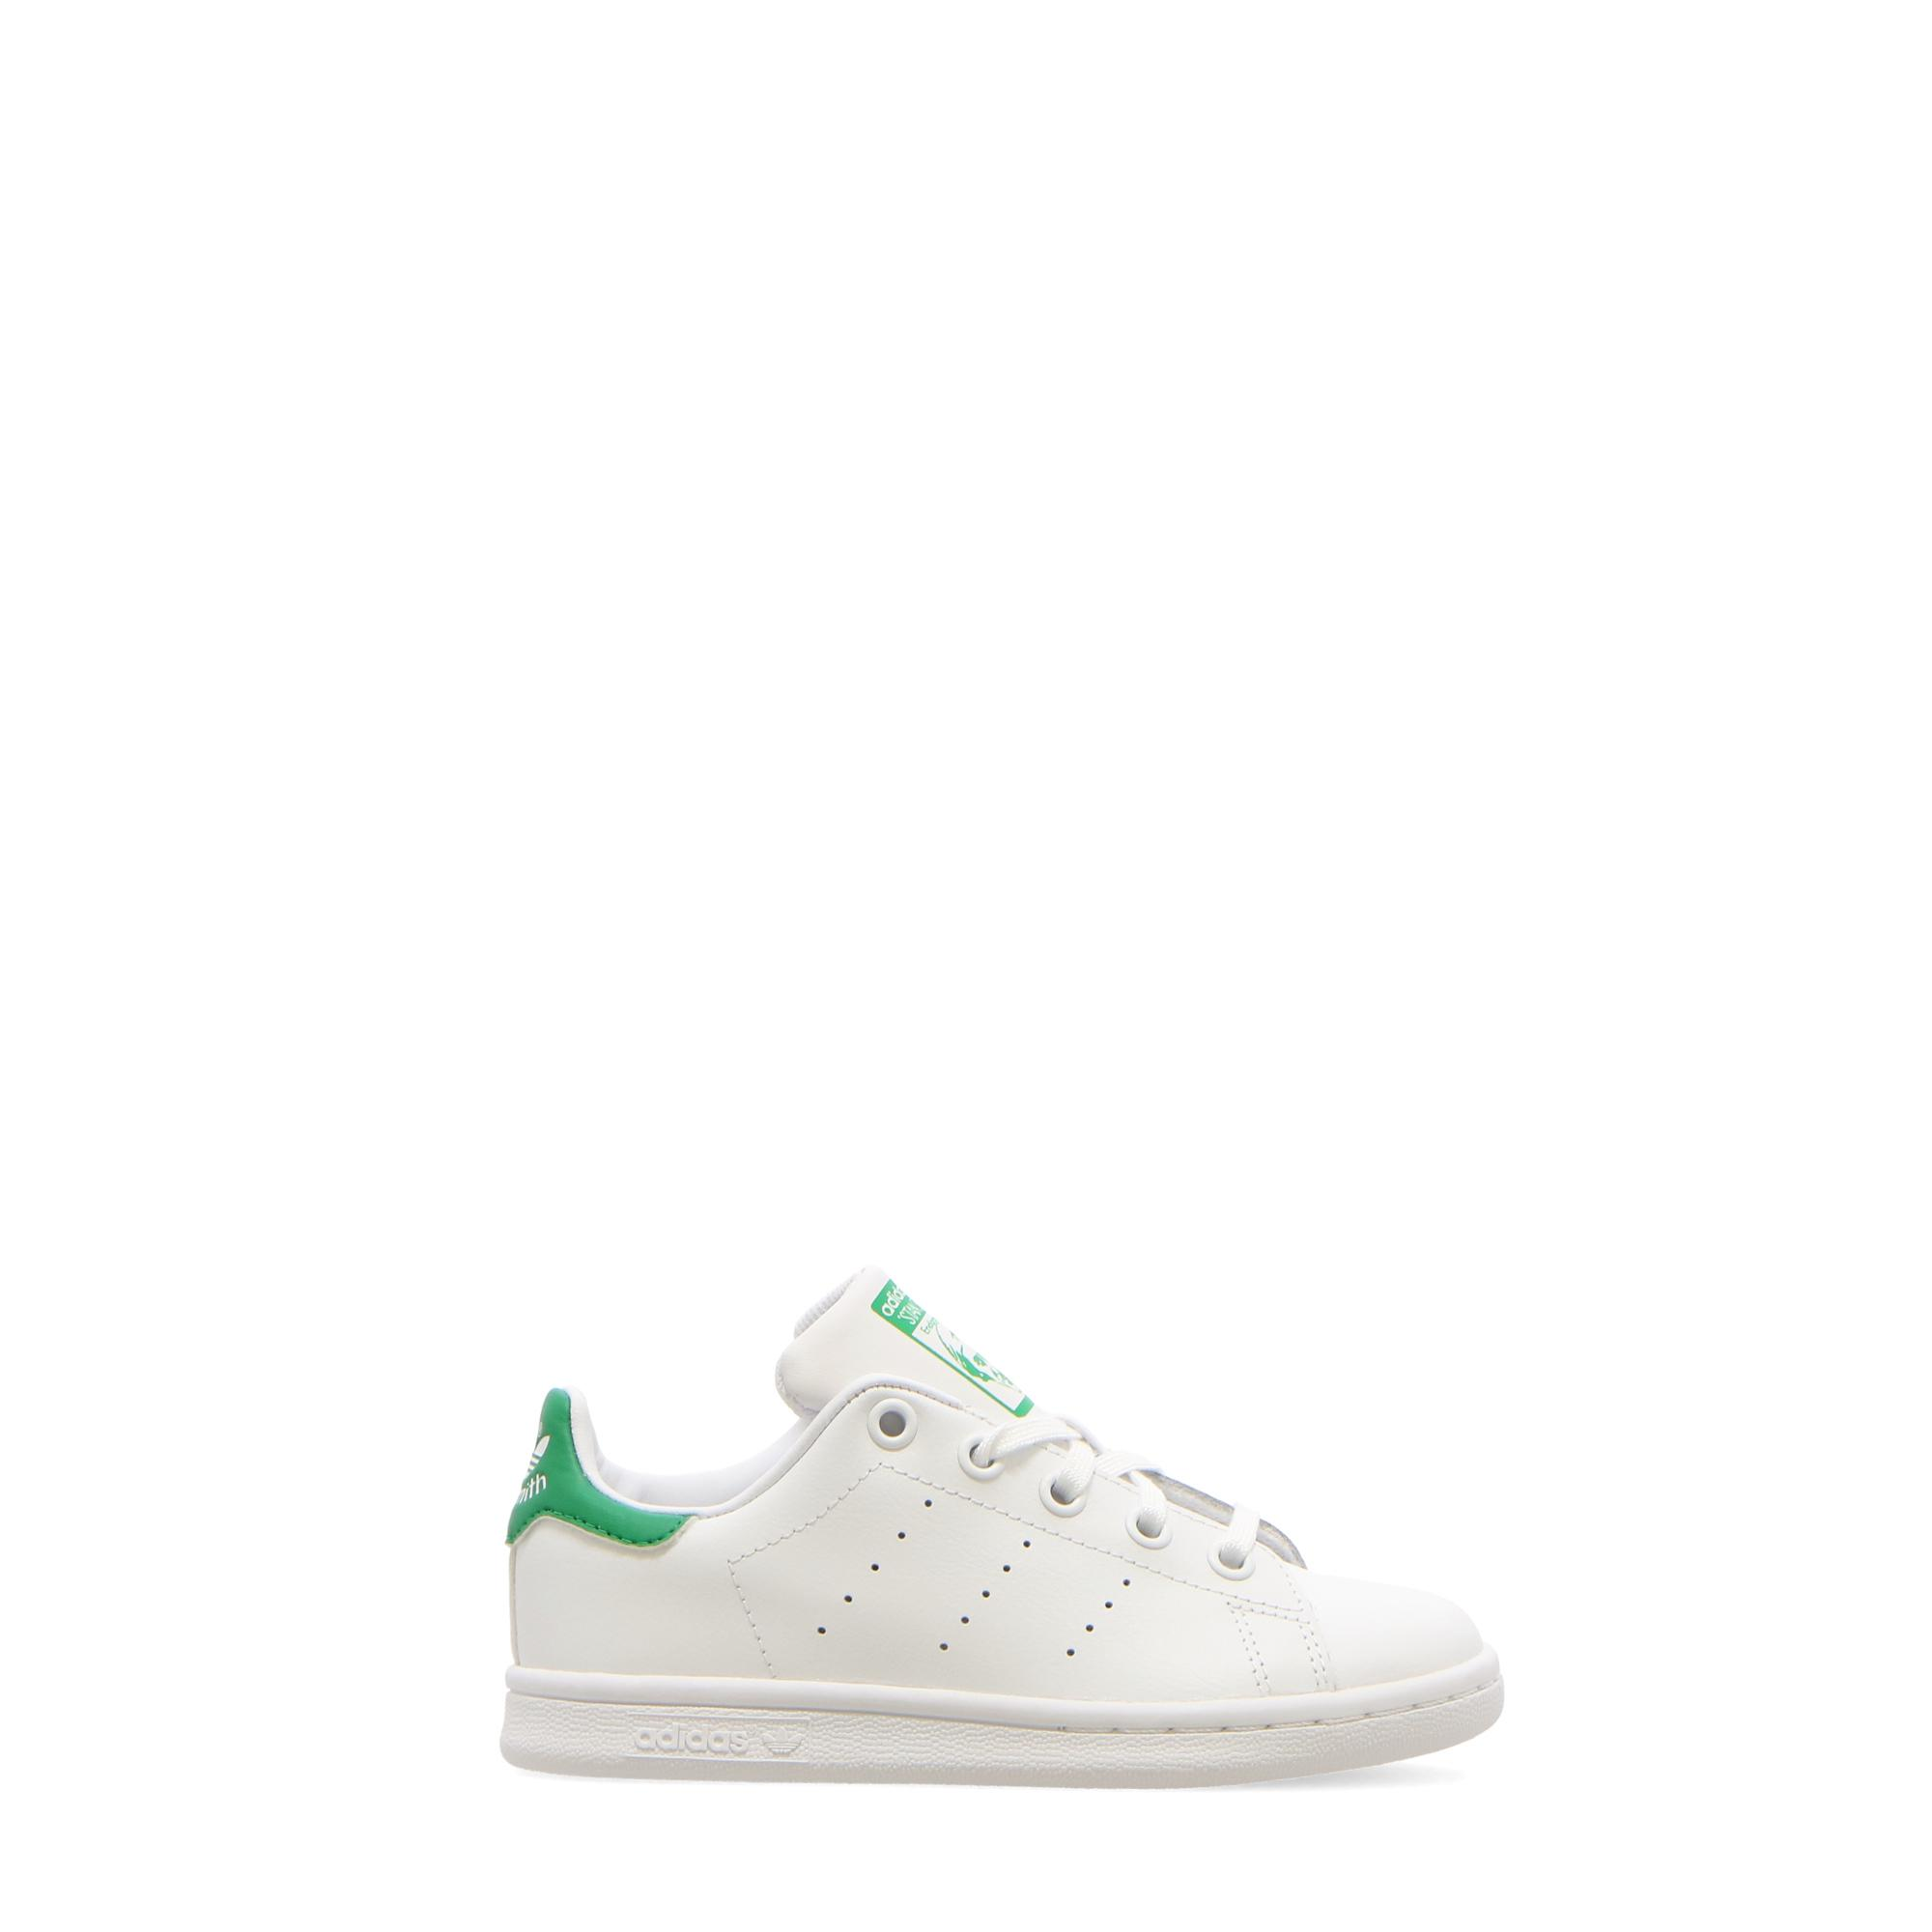 Adidas Stan Smith C White white green